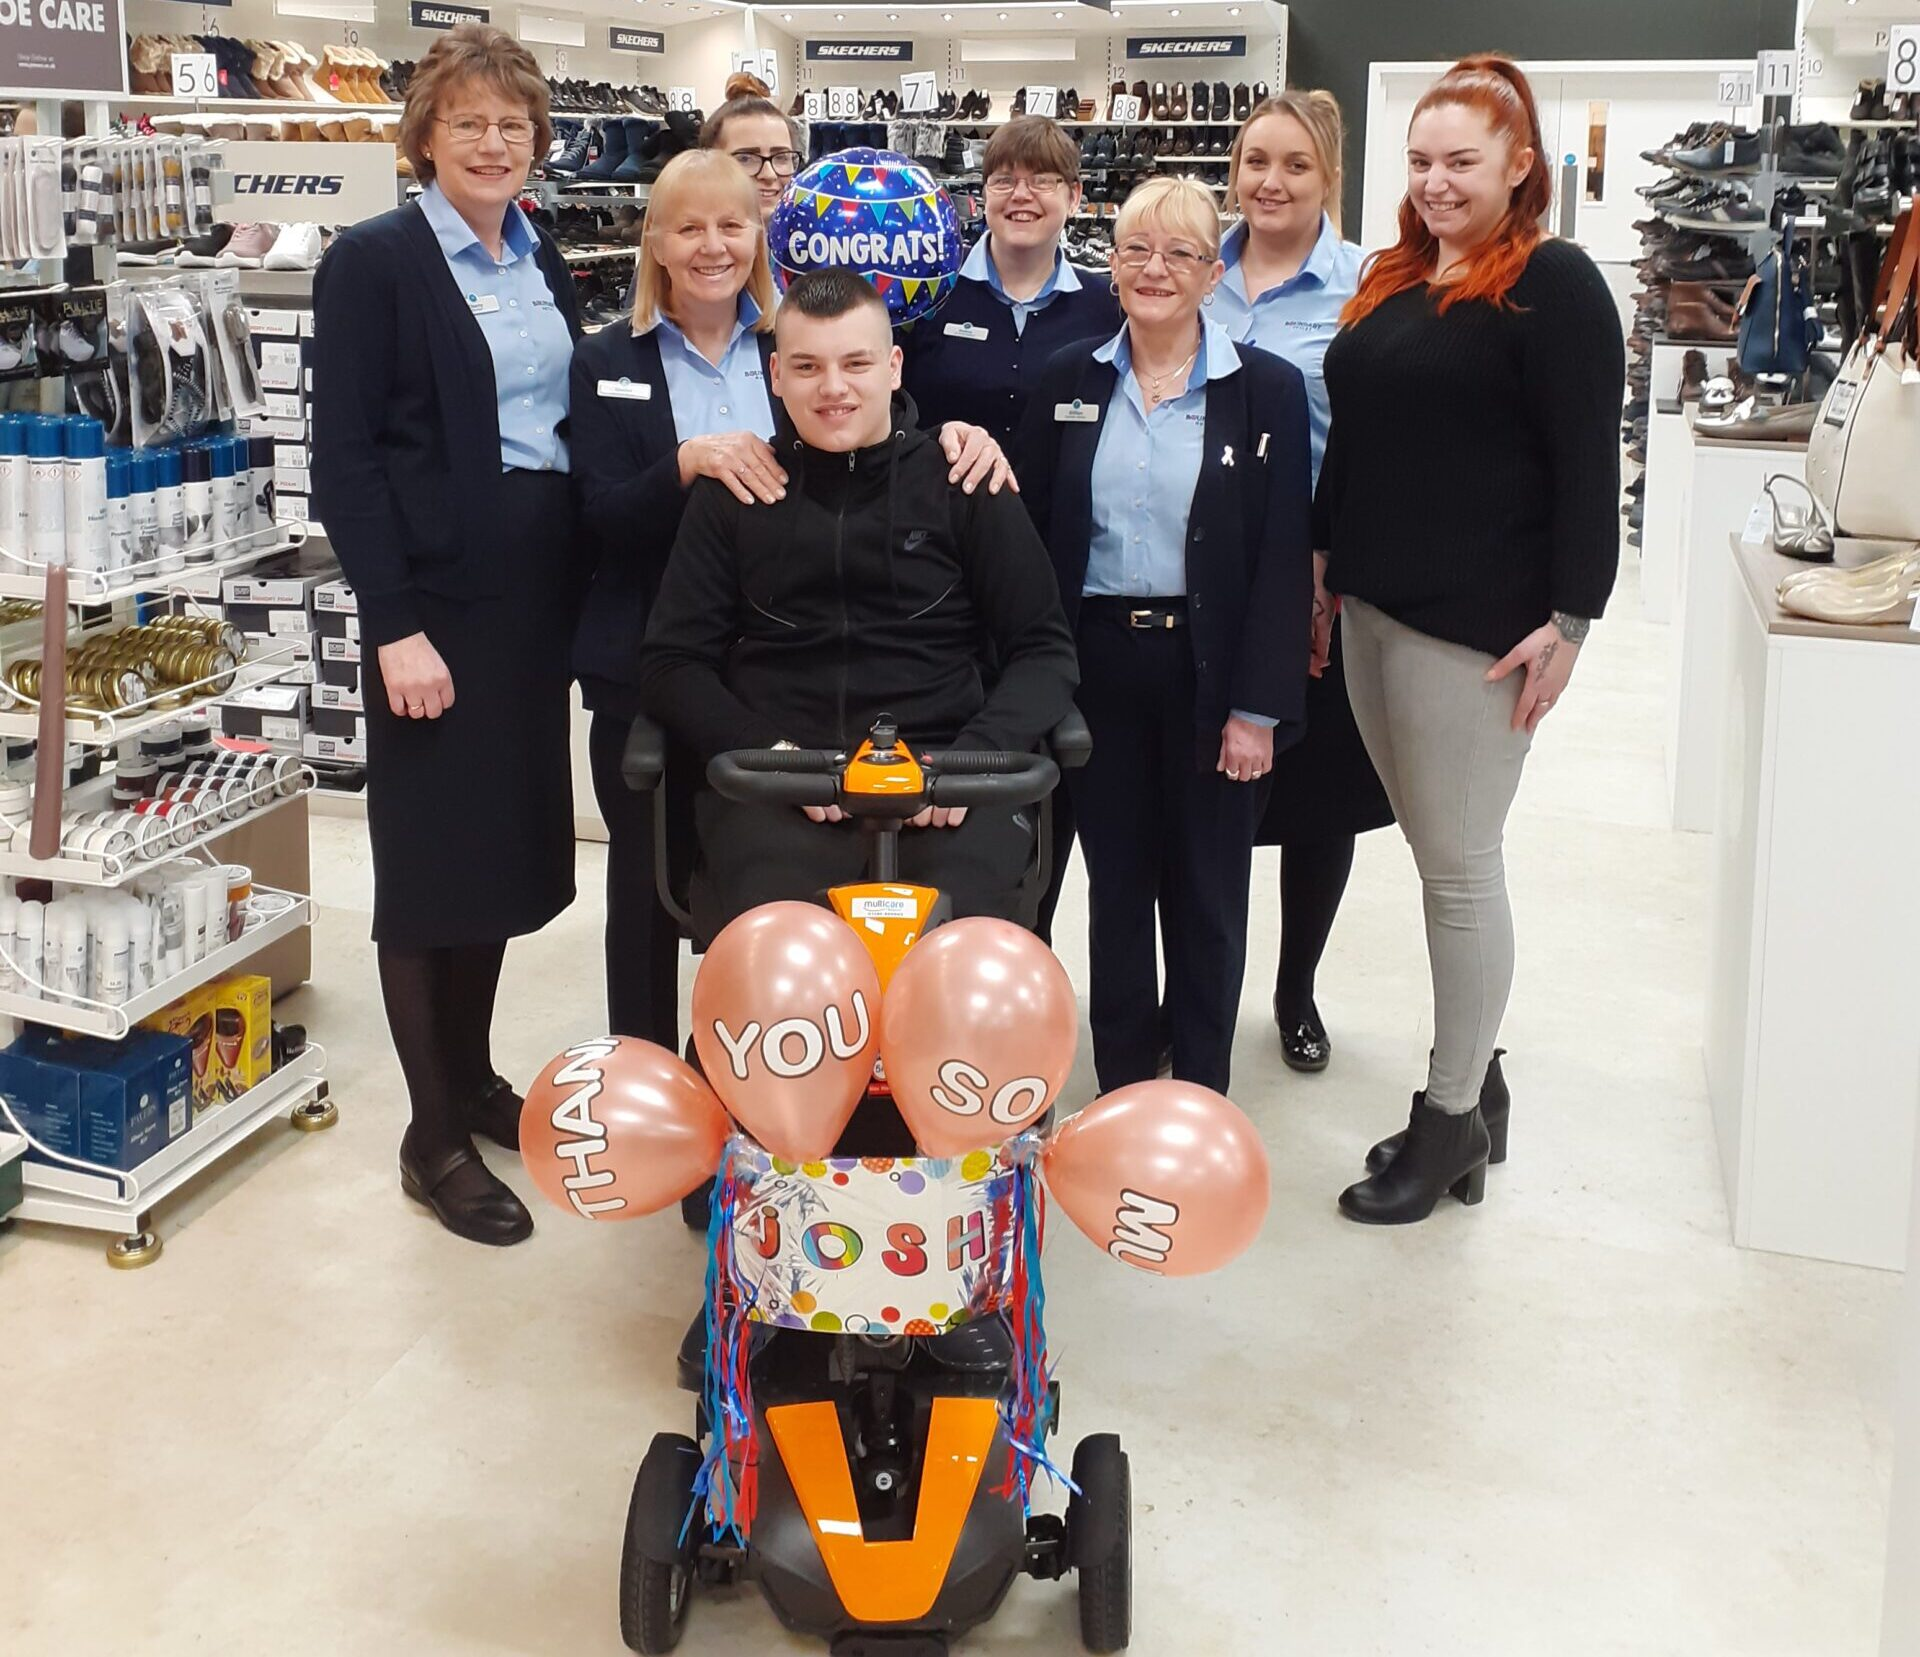 Joshua on his new mobility scooter with the team at Pavers in Colne